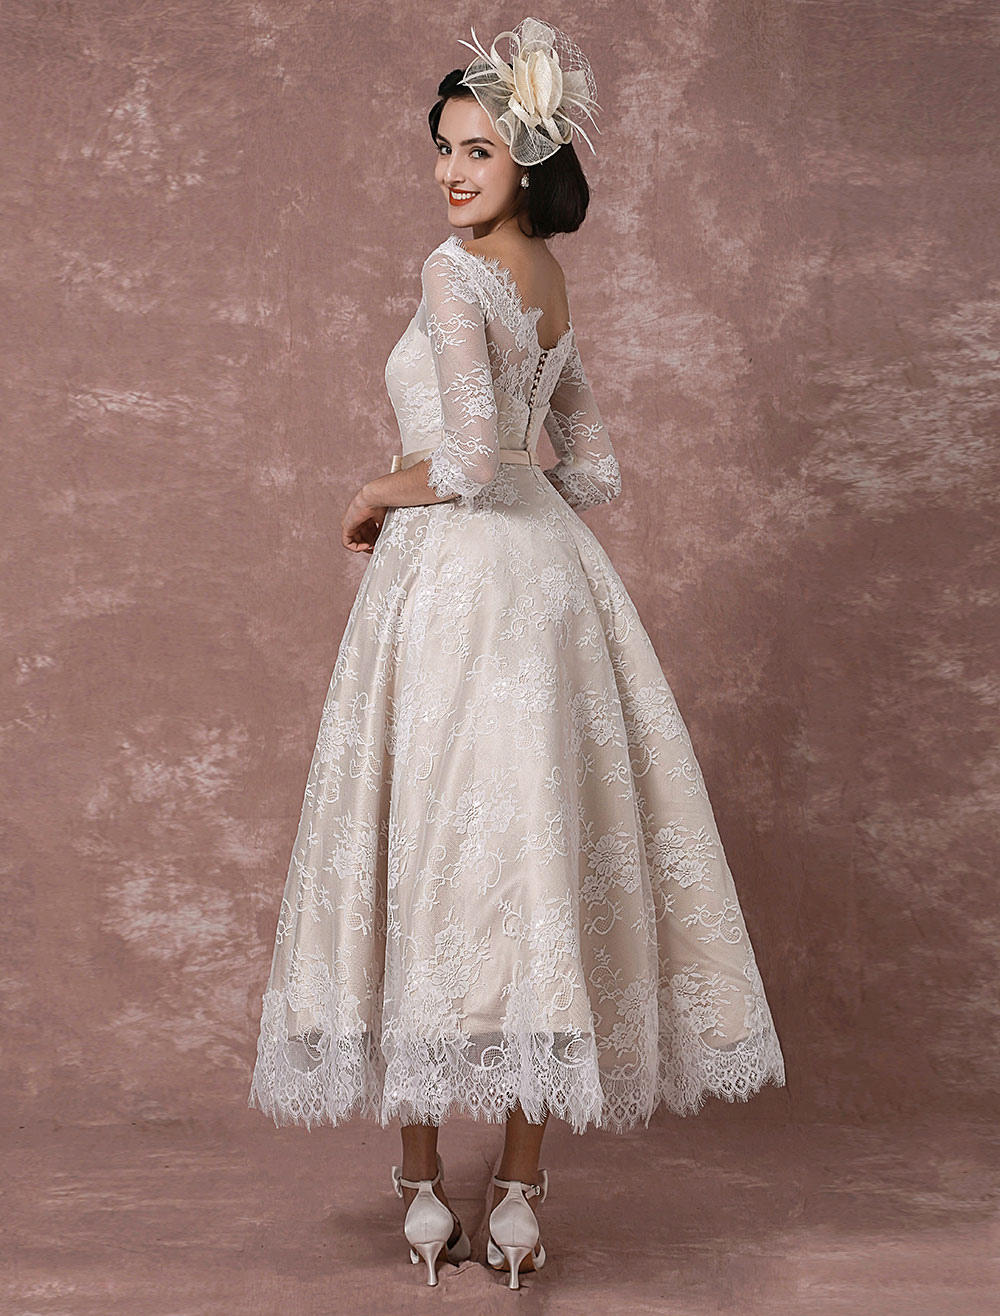 Lace Wedding Dress Vintage Bateau Champagne Half Sleeves Bridal Gown A line  Backless Tea length Sash Reception Bridal Dress Milanoo - Milanoo.com fd833a0e59c1